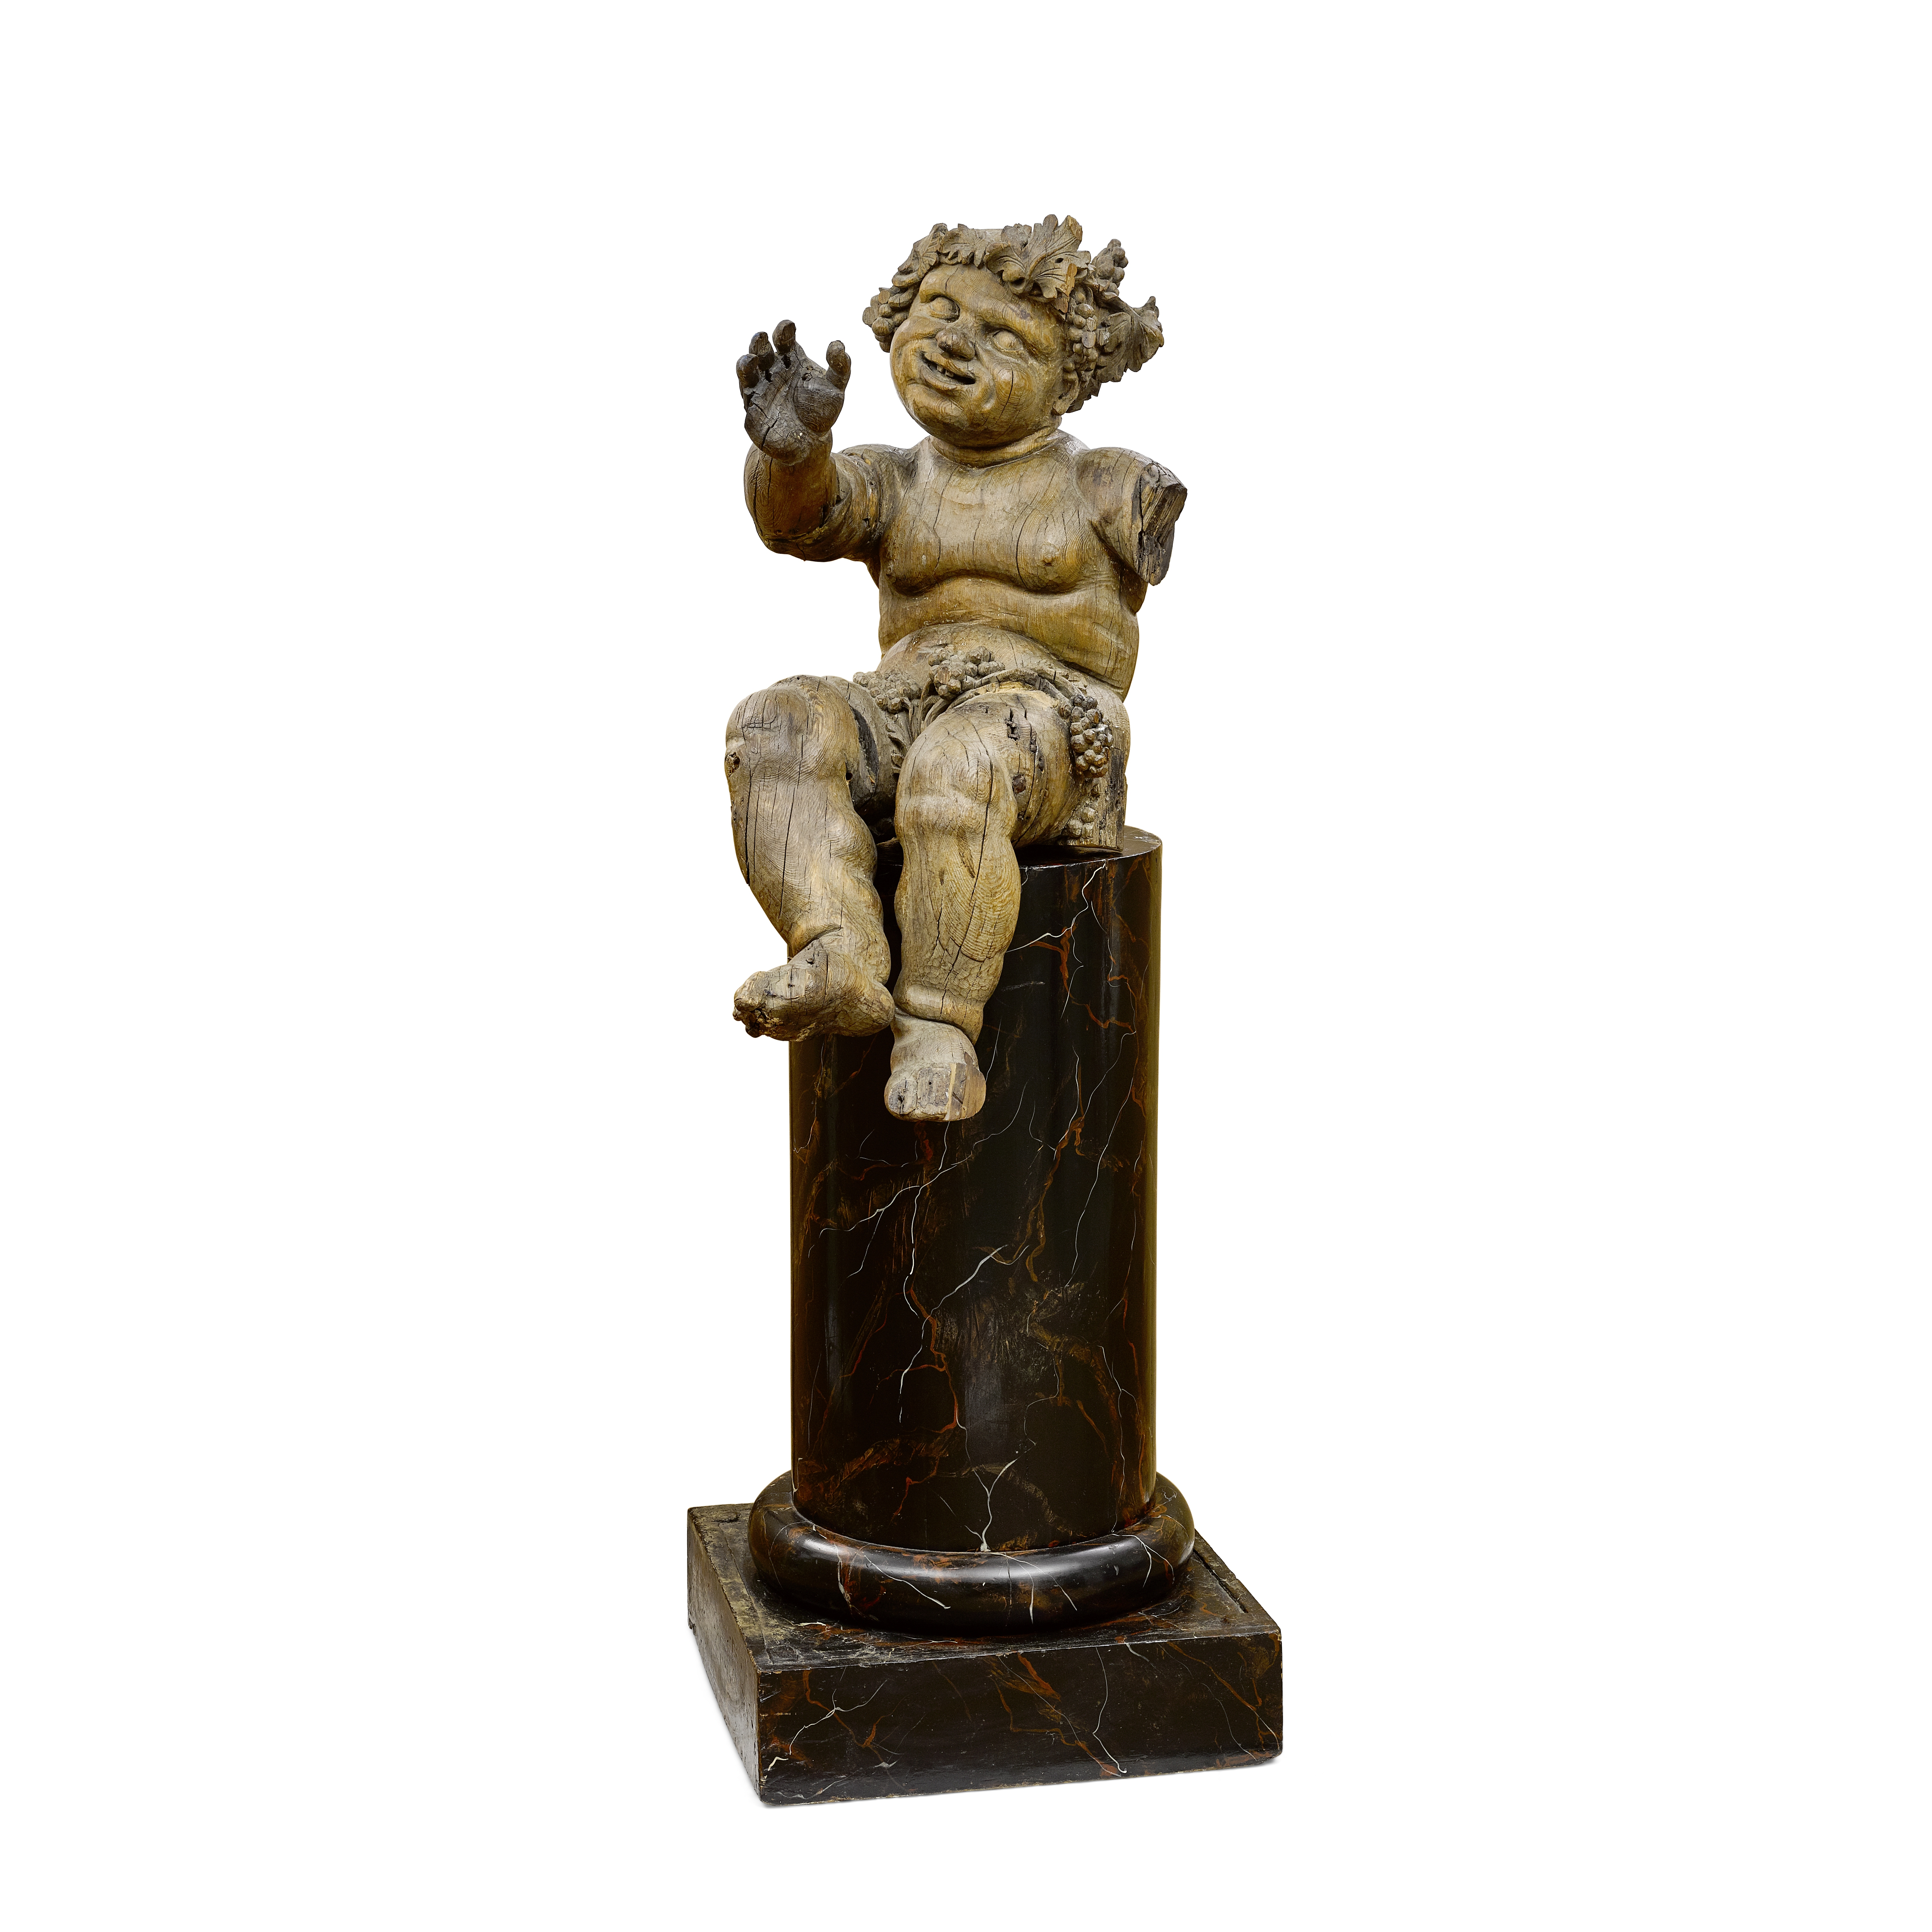 Lot 117 - An Italian Baroque Figure of a Putto on a Painted Pedestal 18th century and later